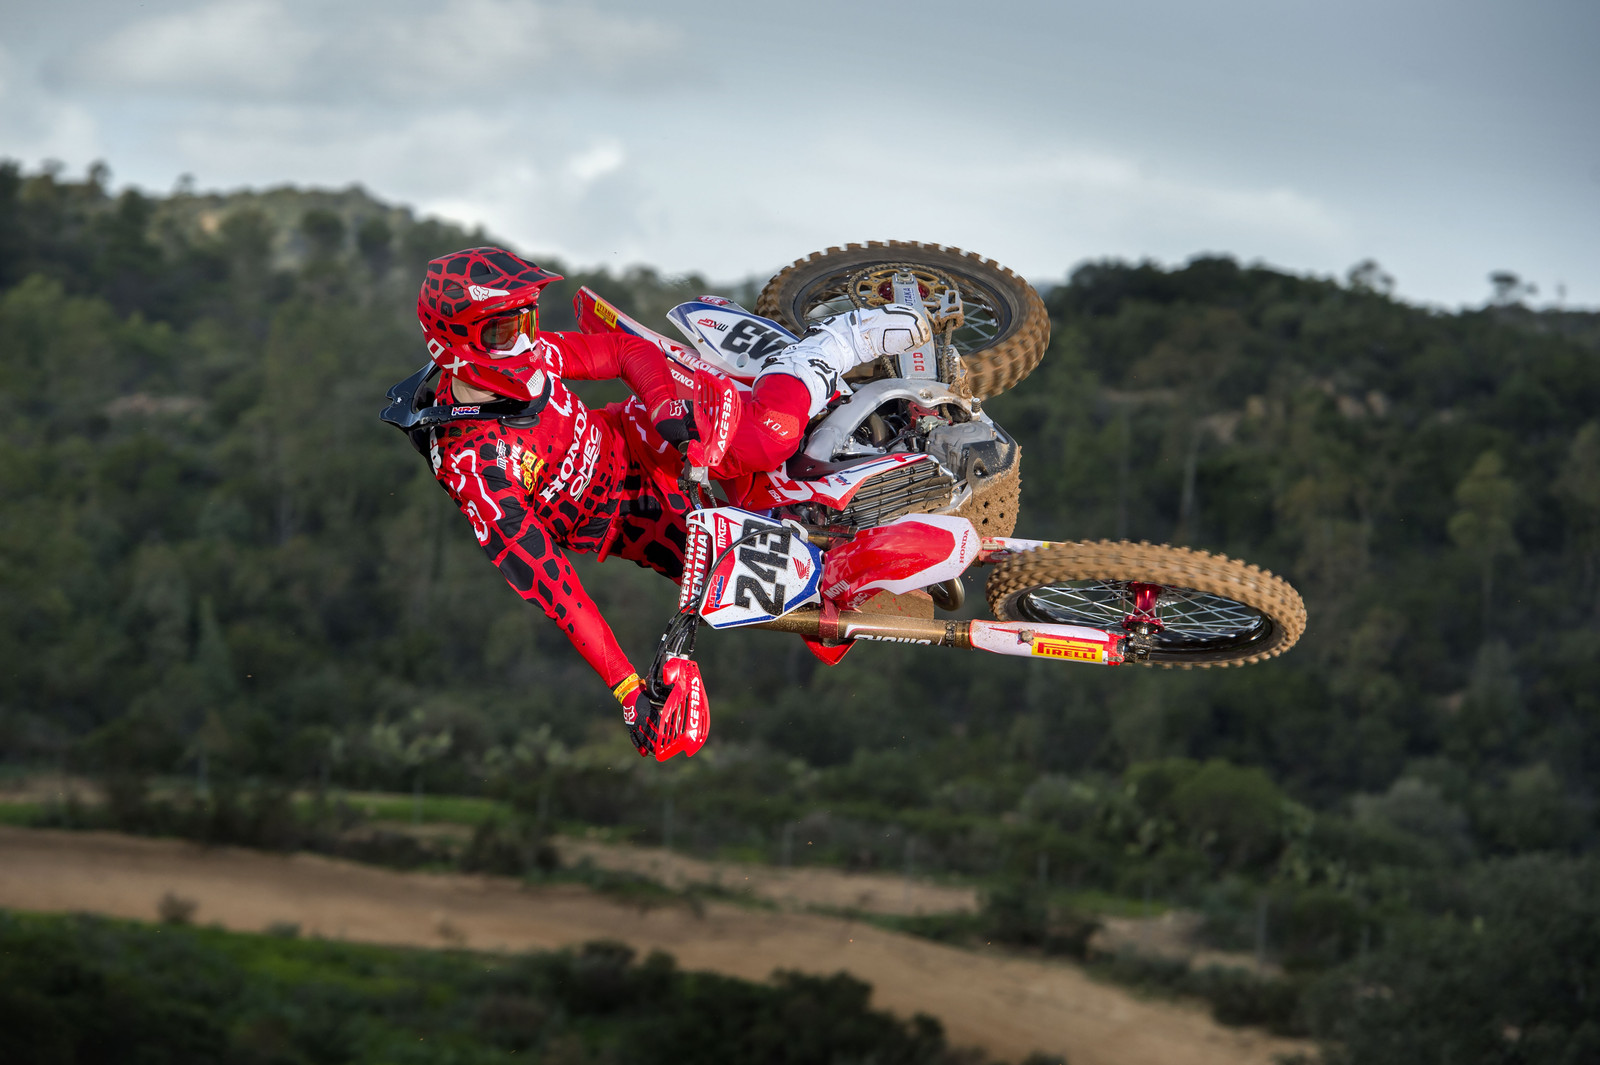 Tim Gajser - First Look: 2017 Honda HRC MXGP and MX2 Team - Motocross Pictures - Vital MX